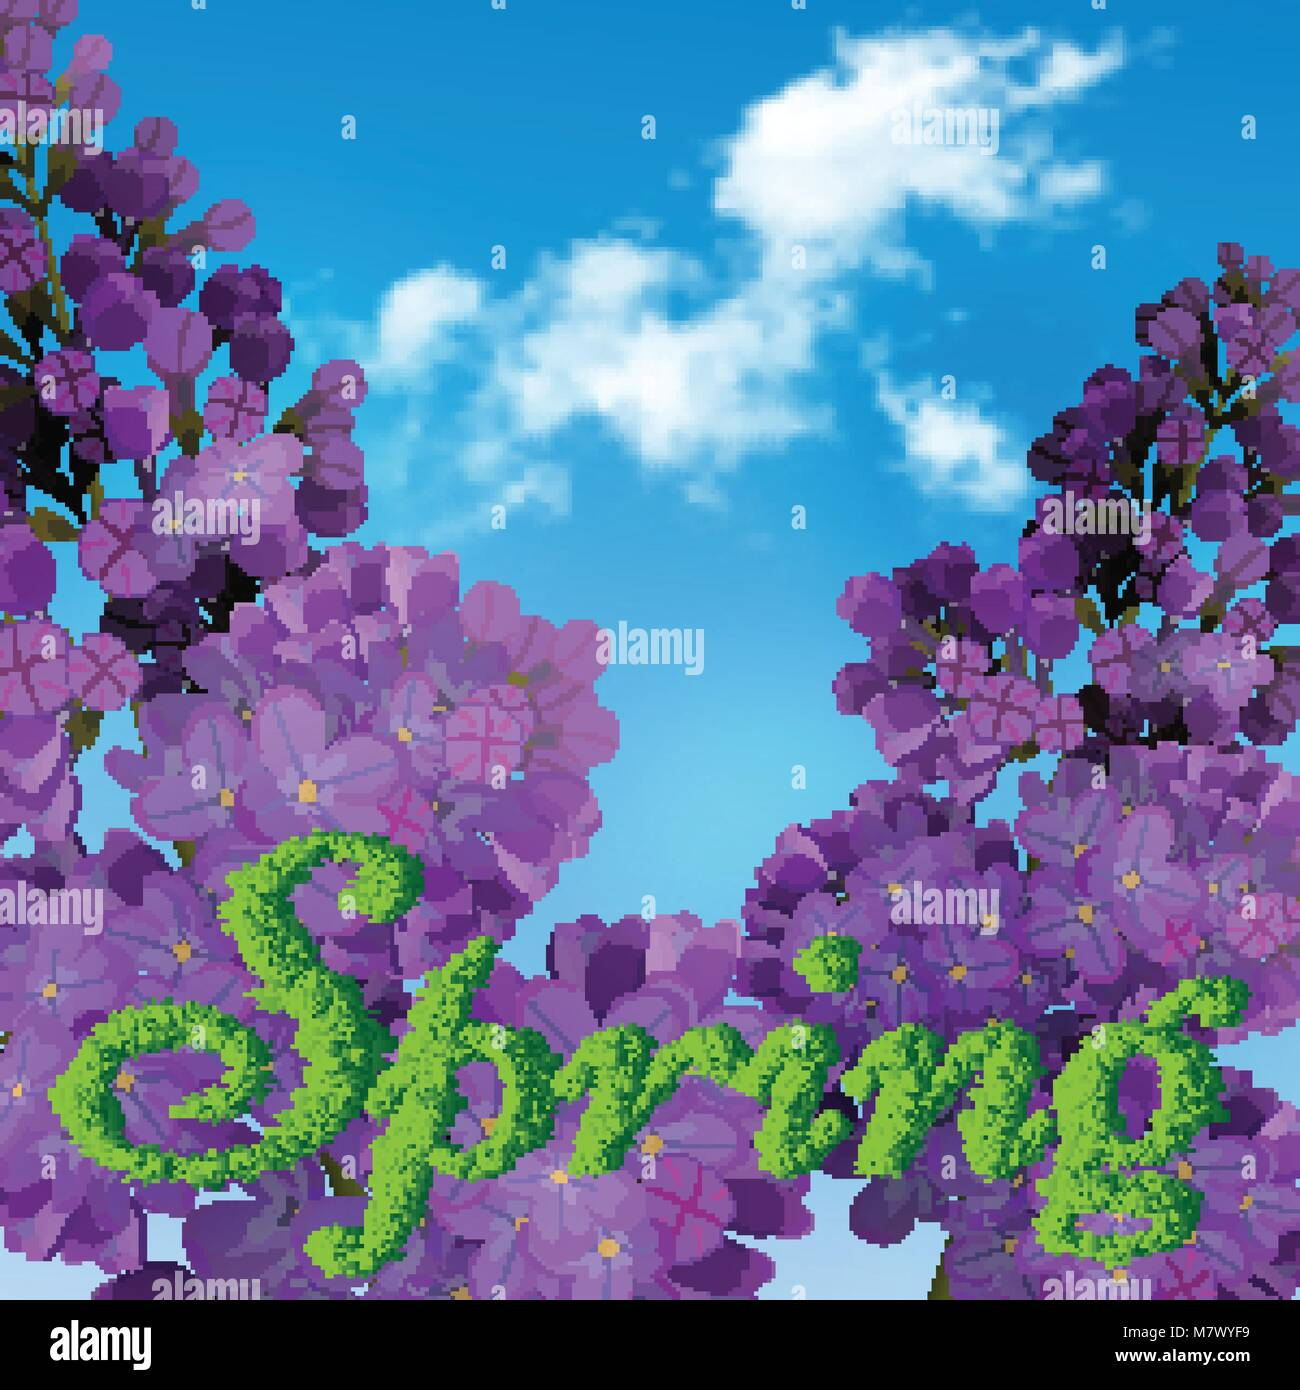 Blooming violet lilac flowers - floral background with blue-sky and ...